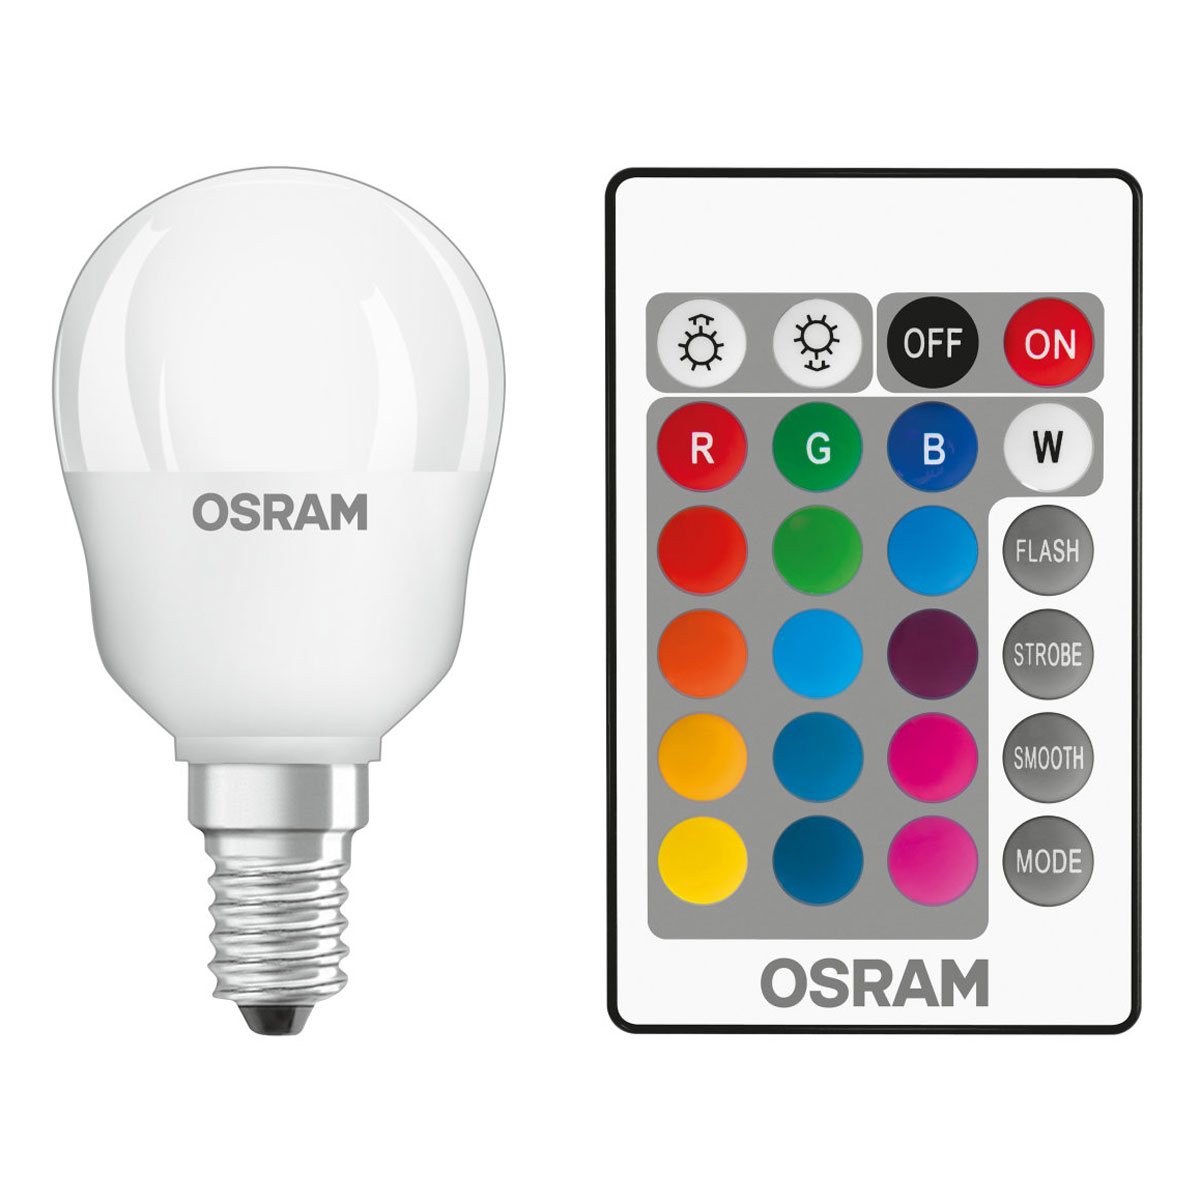 osram ampoule led retrofit rgbw goutte t l commande e14 4 5w 25w a ampoule led osram sur. Black Bedroom Furniture Sets. Home Design Ideas